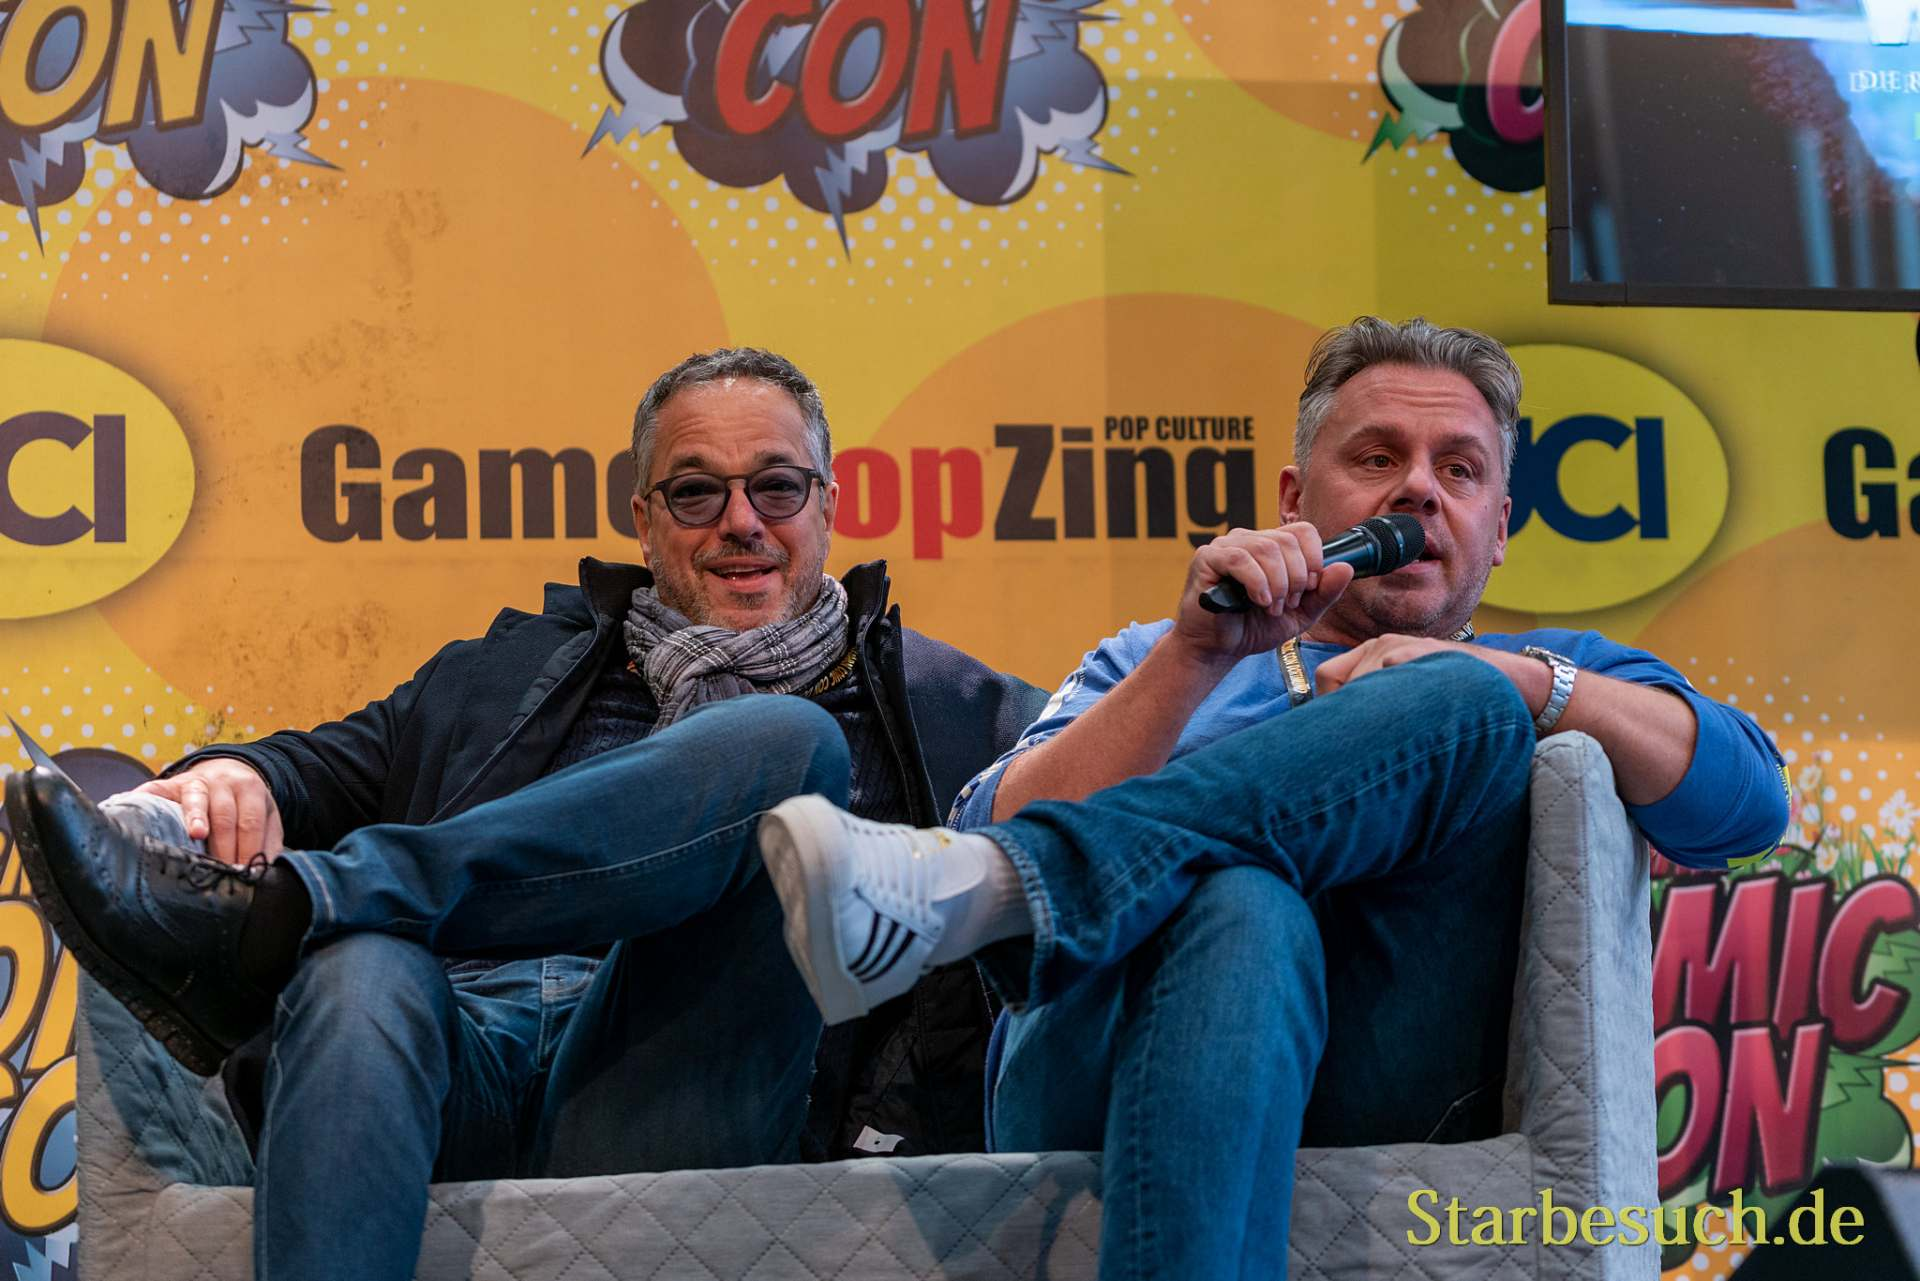 DORTMUND, GERMANY - December 8th 2019: Charles Rettinghaus and Dennis Schmidt-Foß at German Comic Con Dortmund